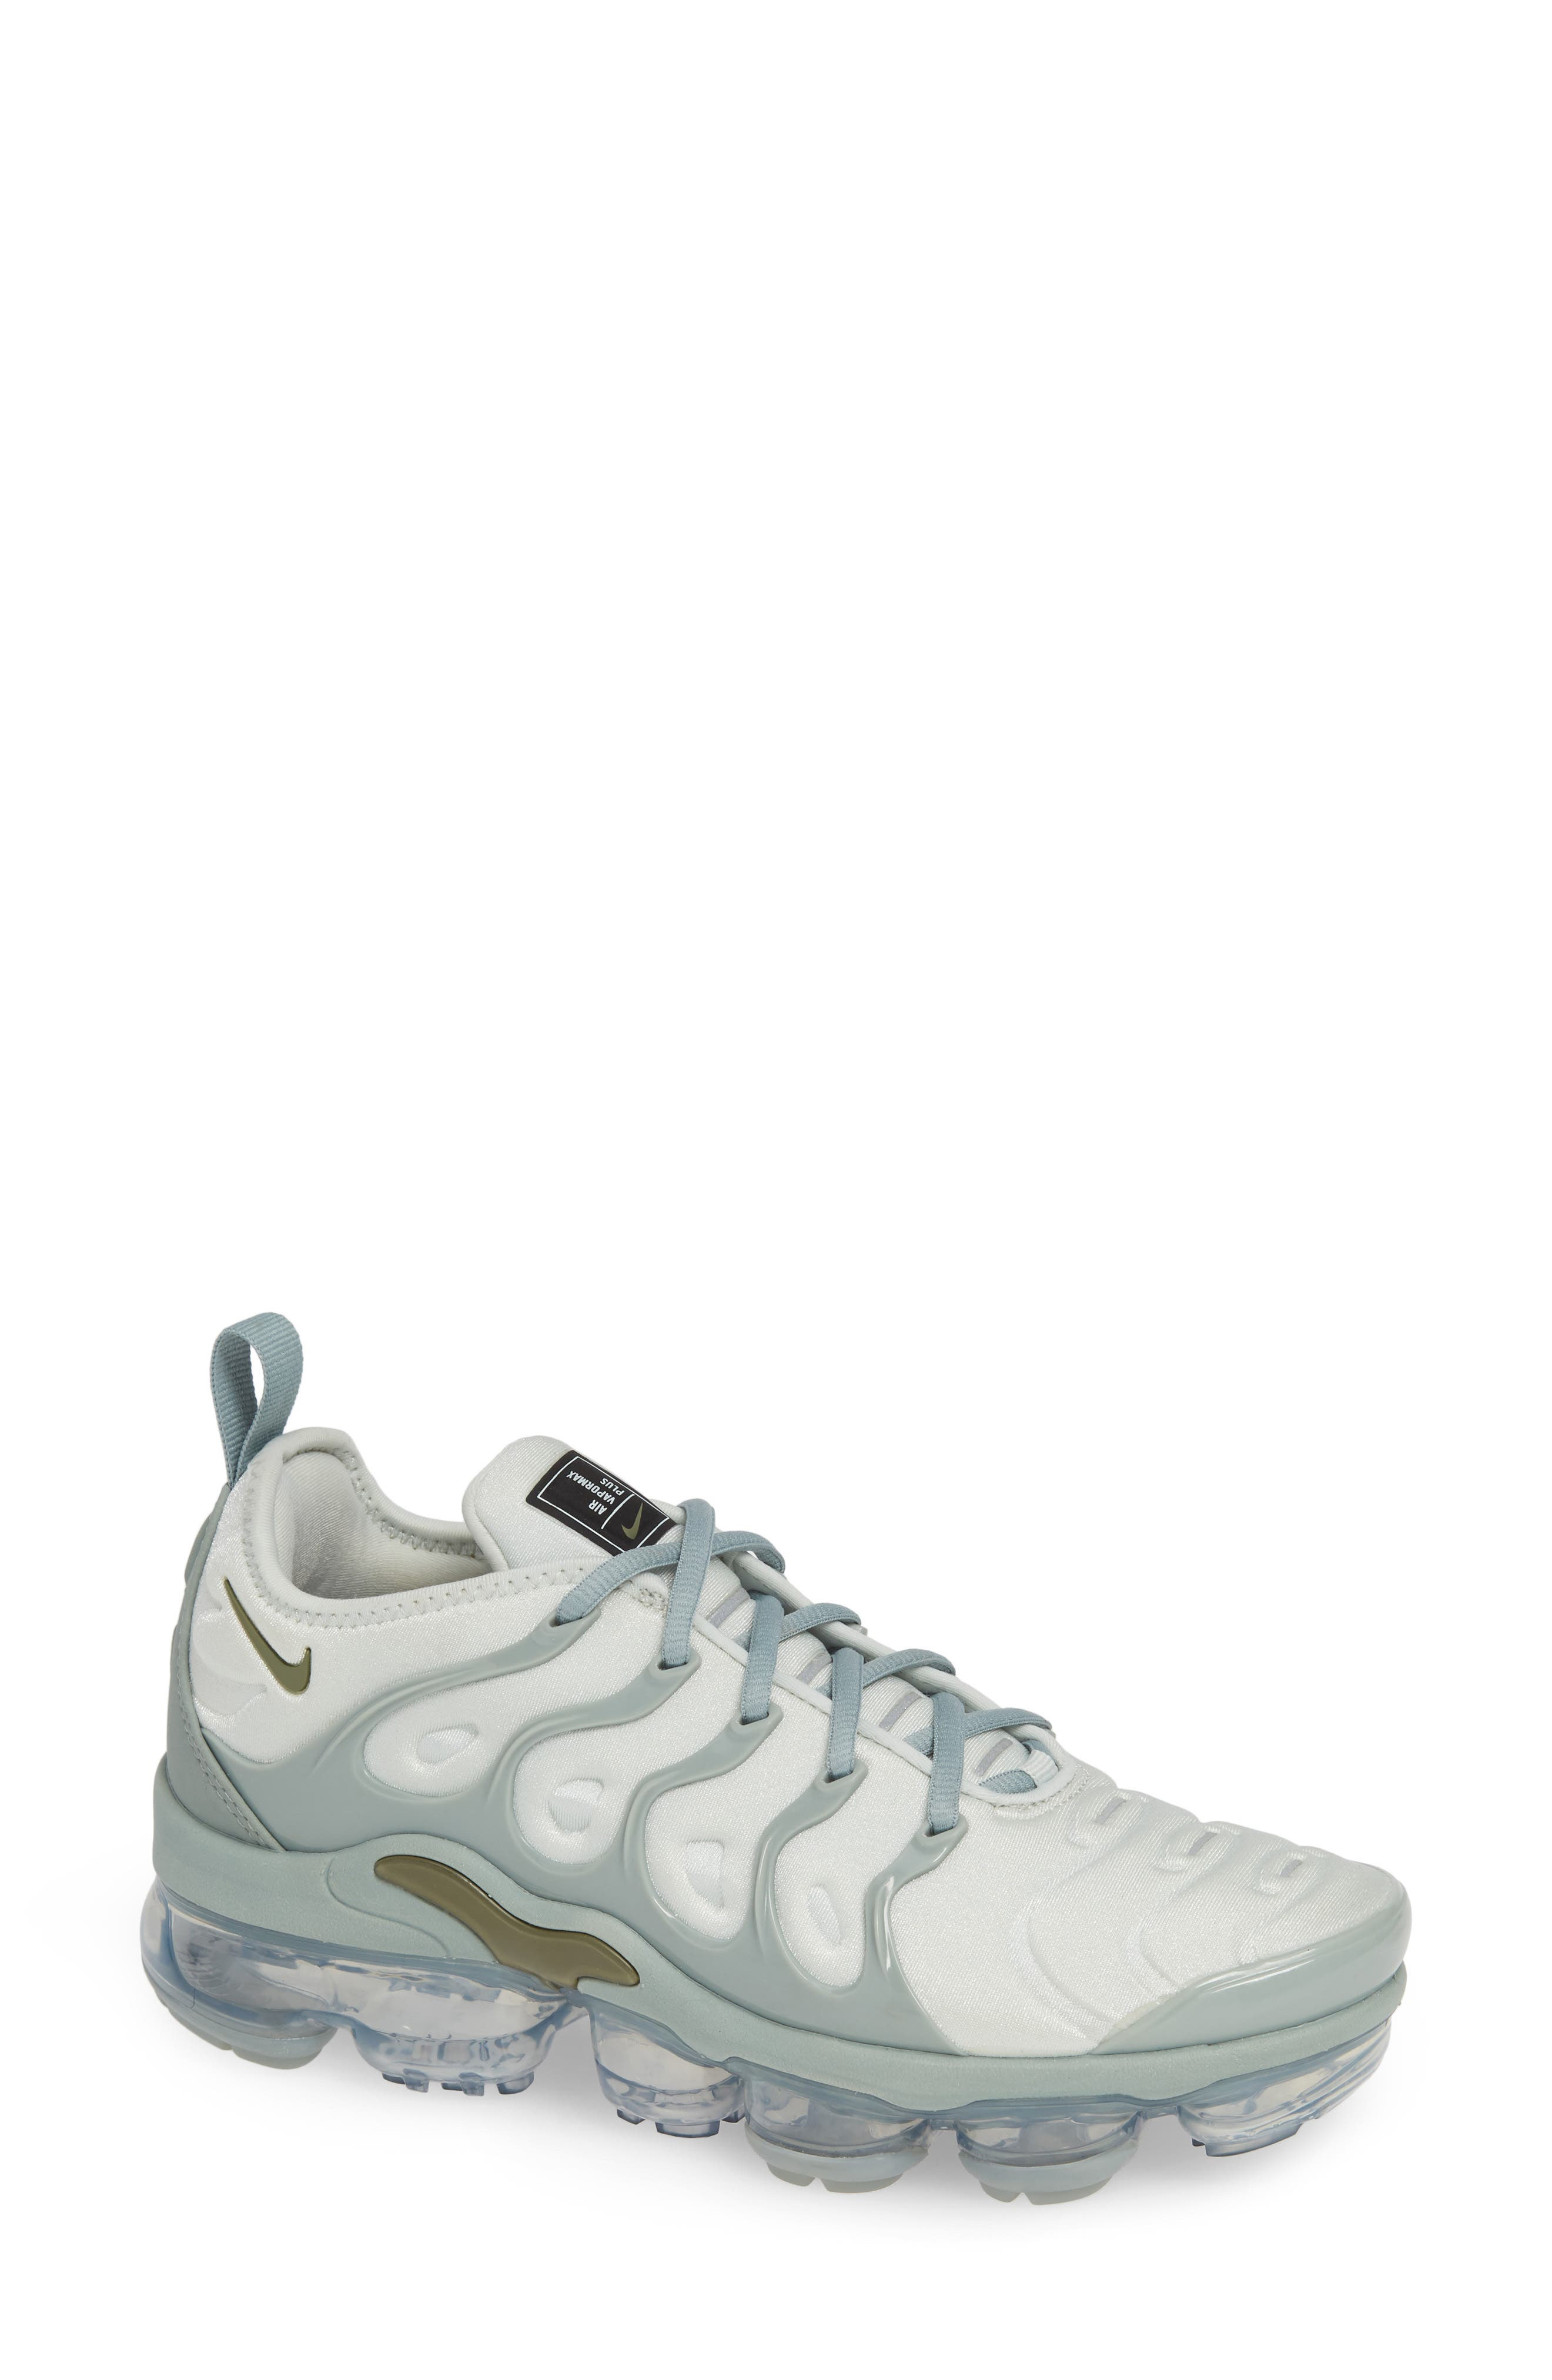 Air VaporMax Plus Sneaker,                             Main thumbnail 1, color,                             LIGHT SILVER/ OLIVE- GREEN